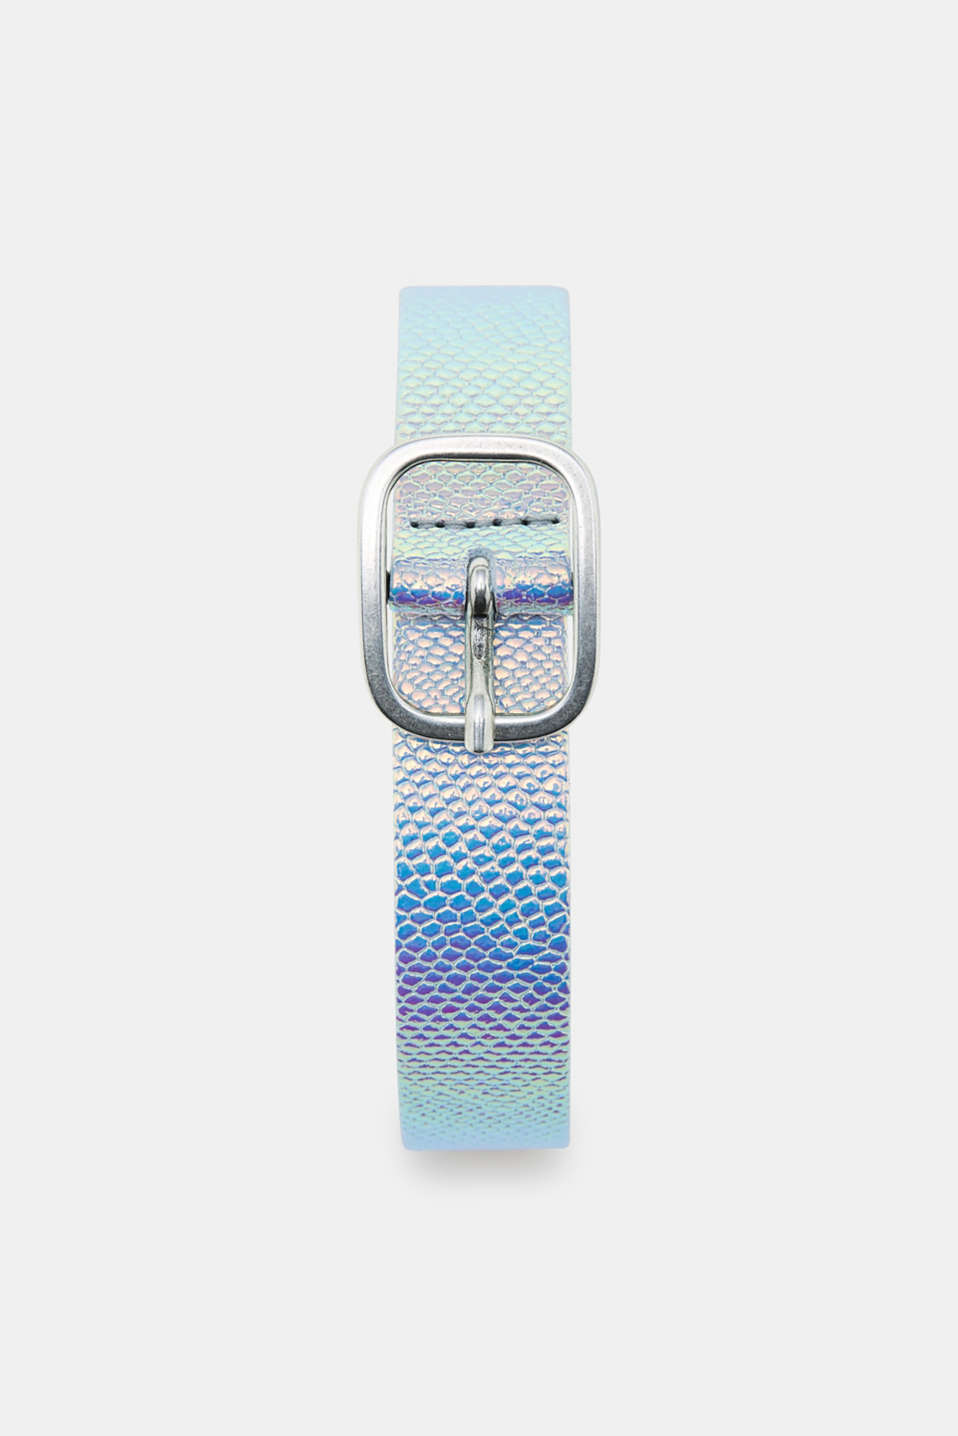 This leather belt in a metallic look shimmers with an iridescent effect in all the colours of the rainbow.